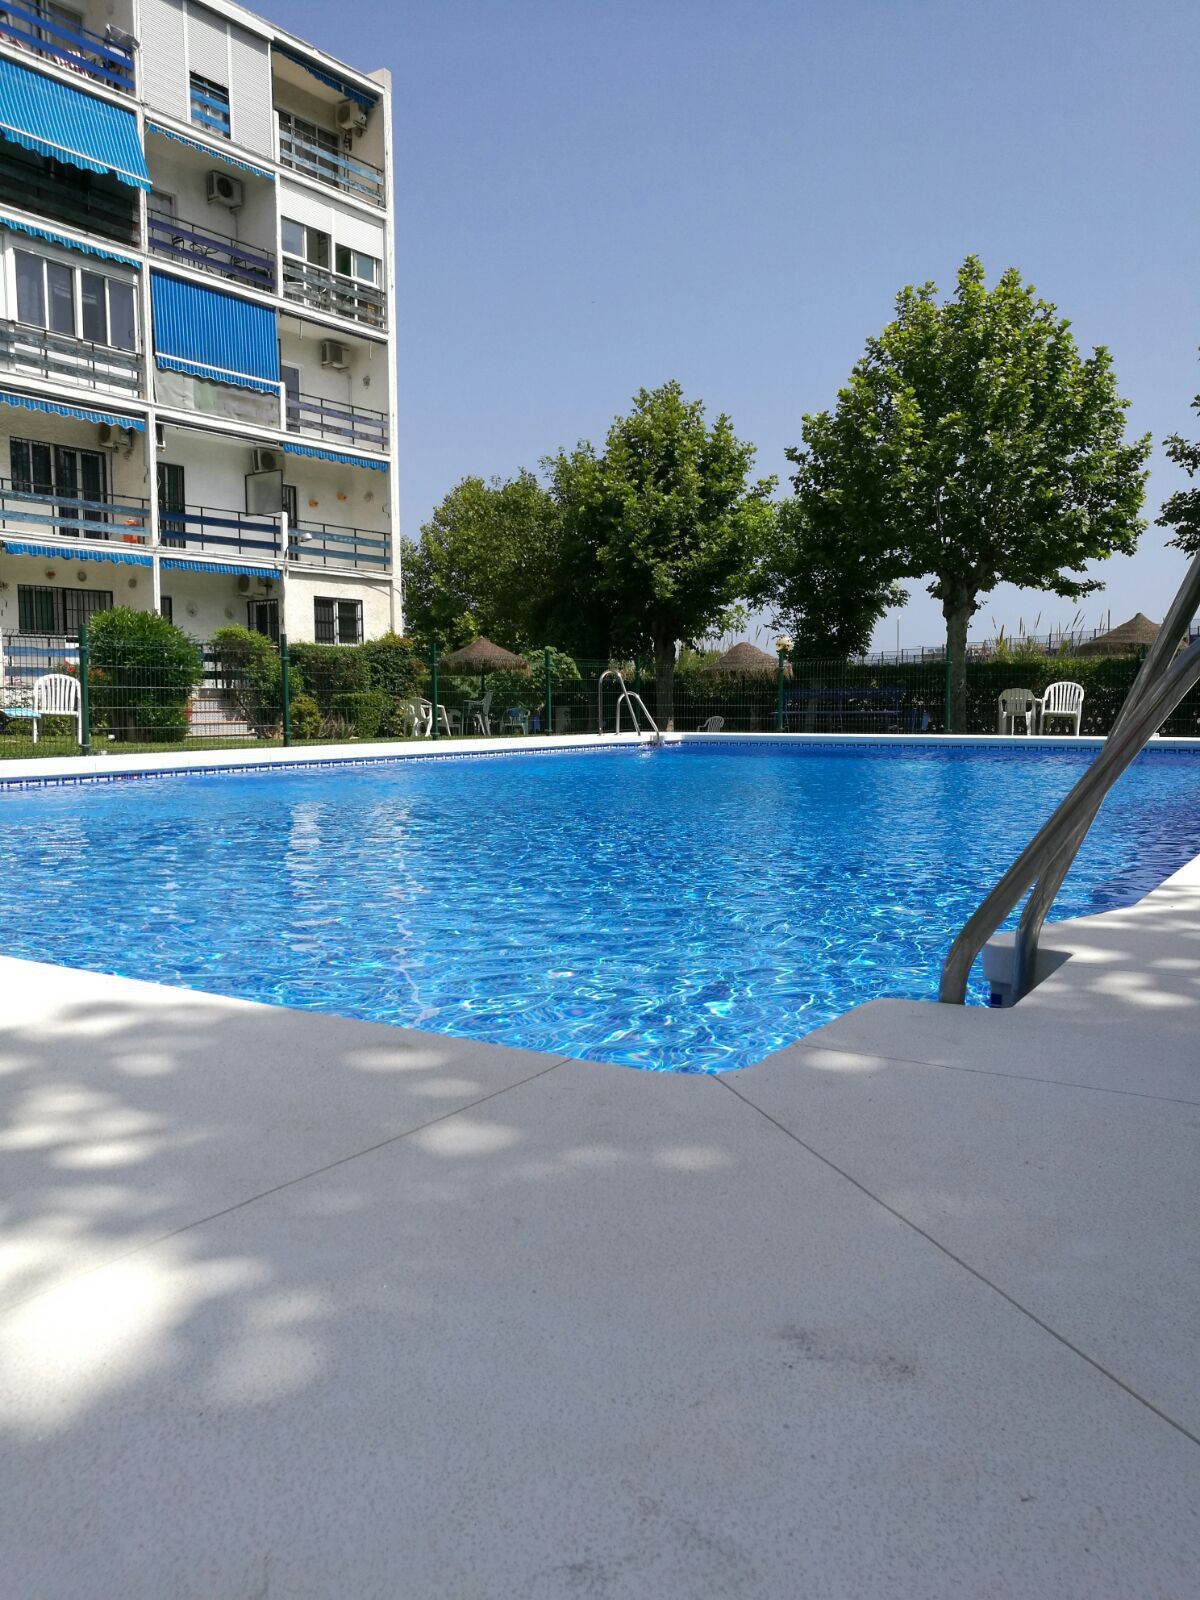 Very well presented ground floor studio apartment located in the in Los Alamos area of Torremolinos , Spain